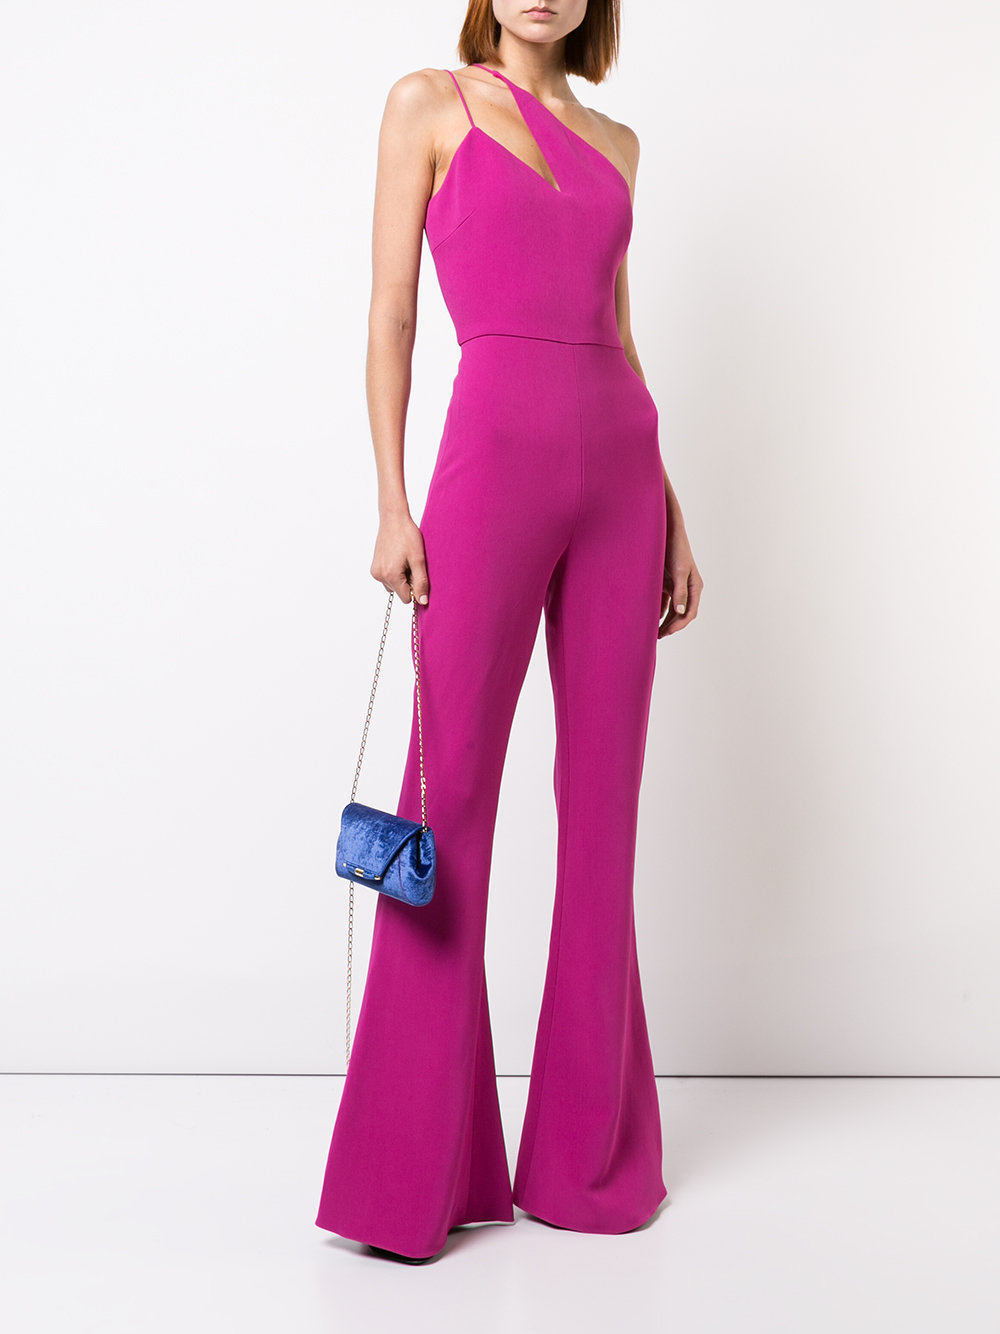 0bf38f2ca24 Cushnie et Ochs One-Shoulder Flared Jumpsuit - How to Style a Jumpsuit -  Source